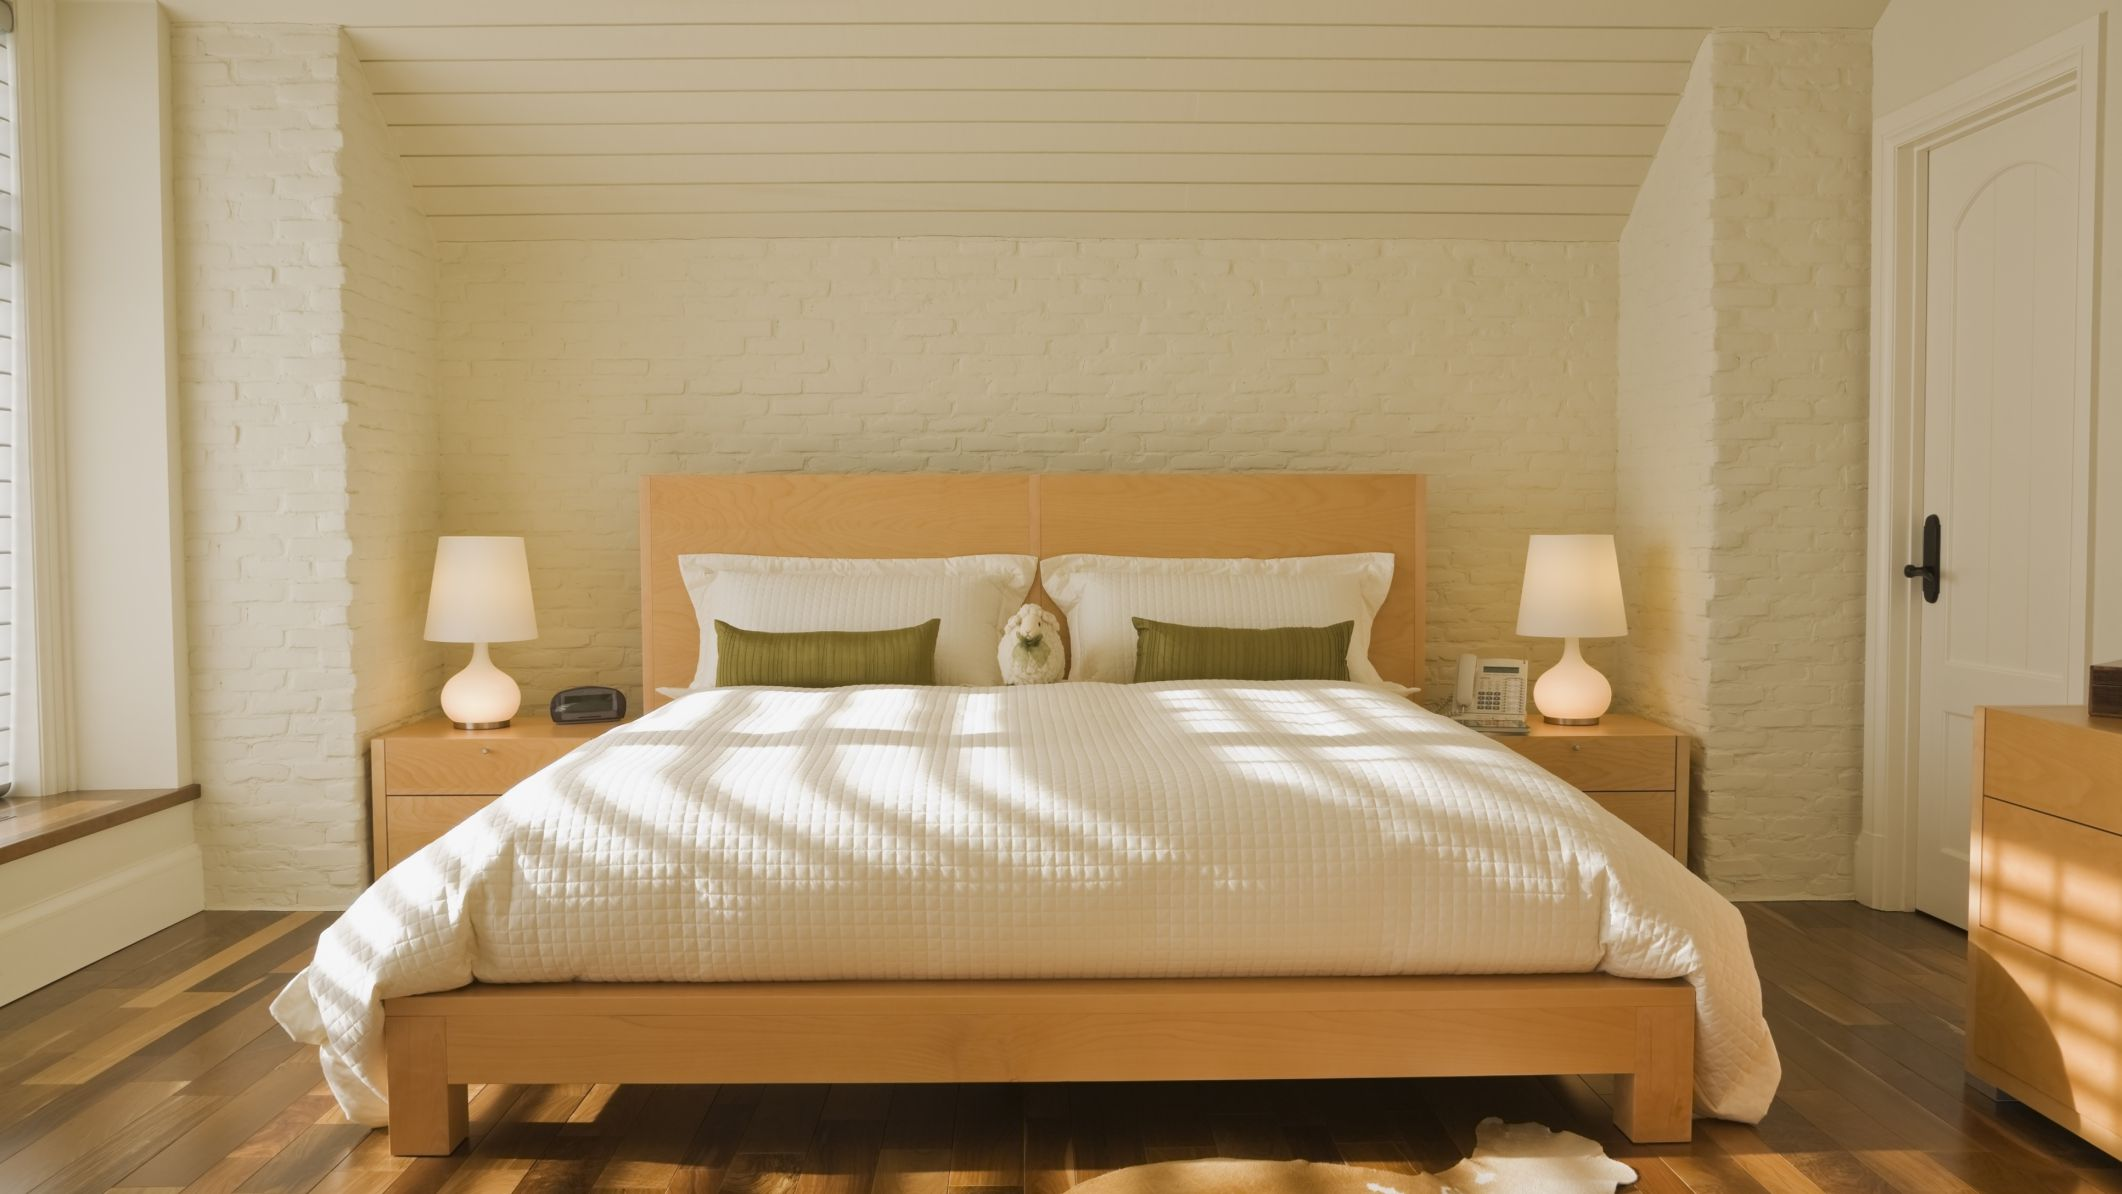 Creating The Ideal Bedroom According To Feng Shui